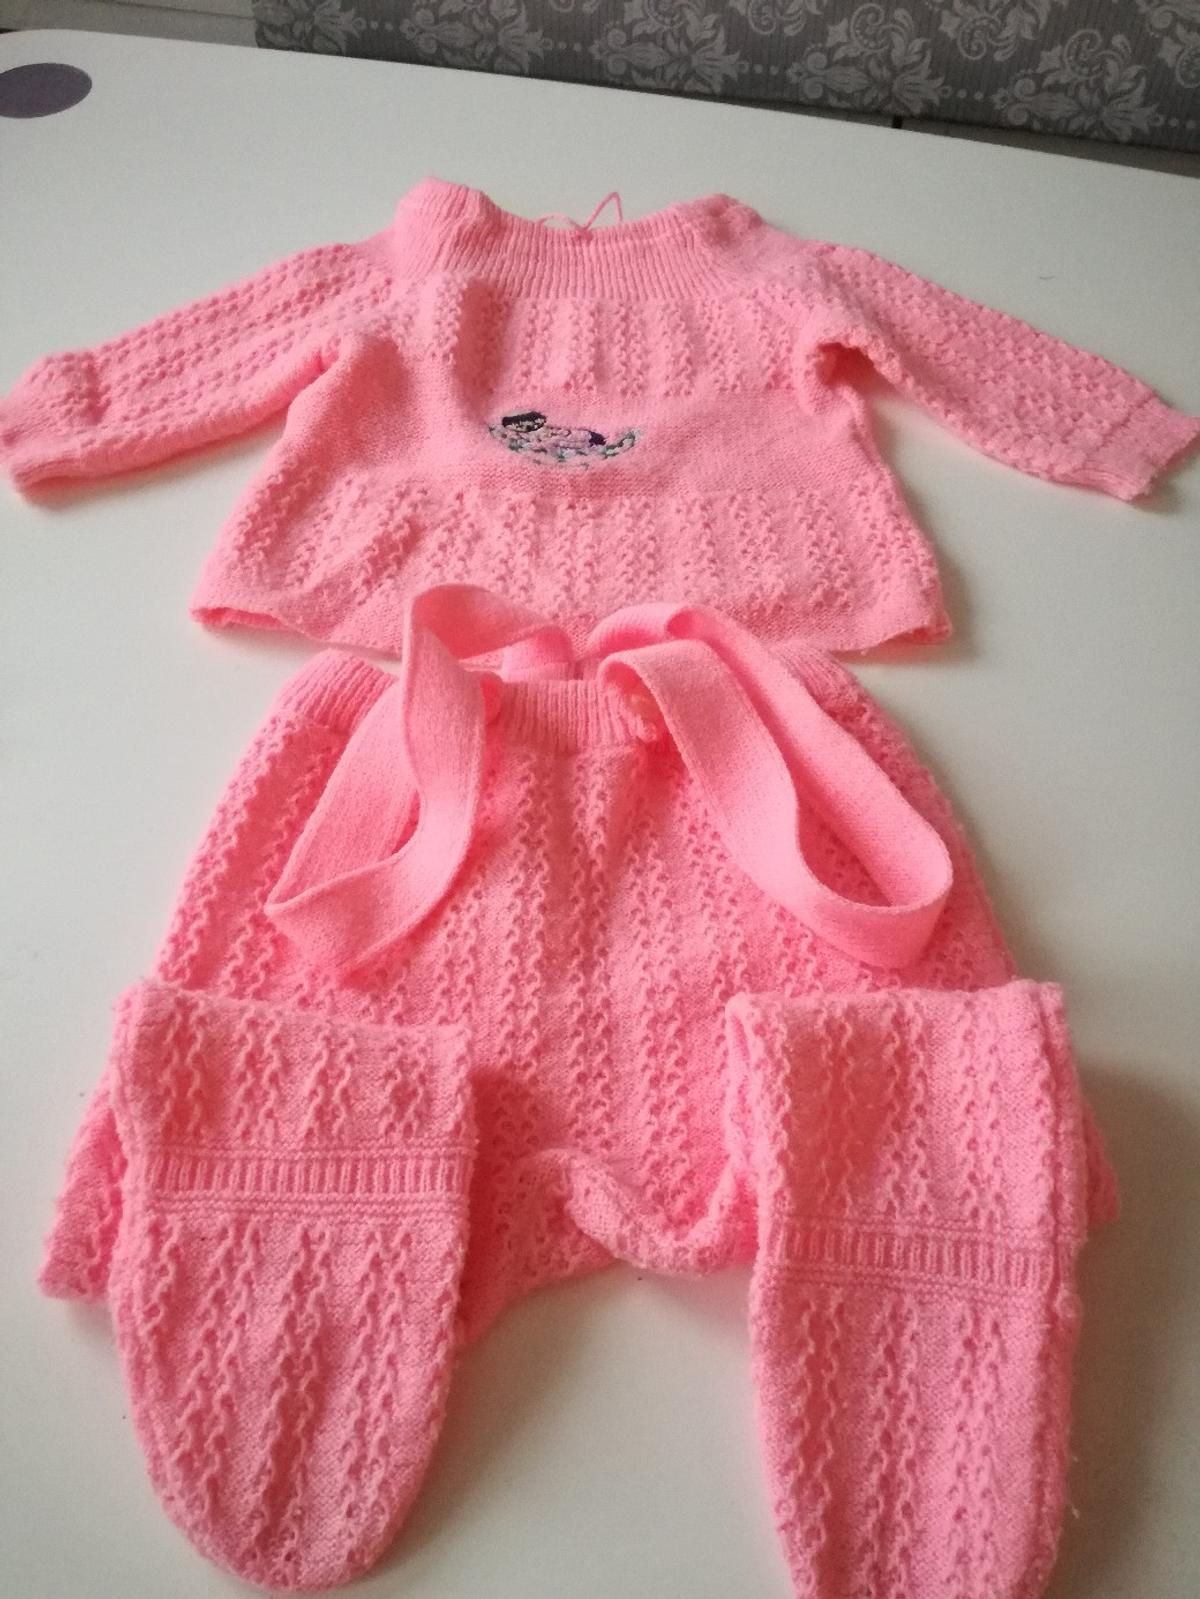 Schöne Baby Bilder Baby Garnitur In 08496 Neumark For €7.00 For Sale | Shpock